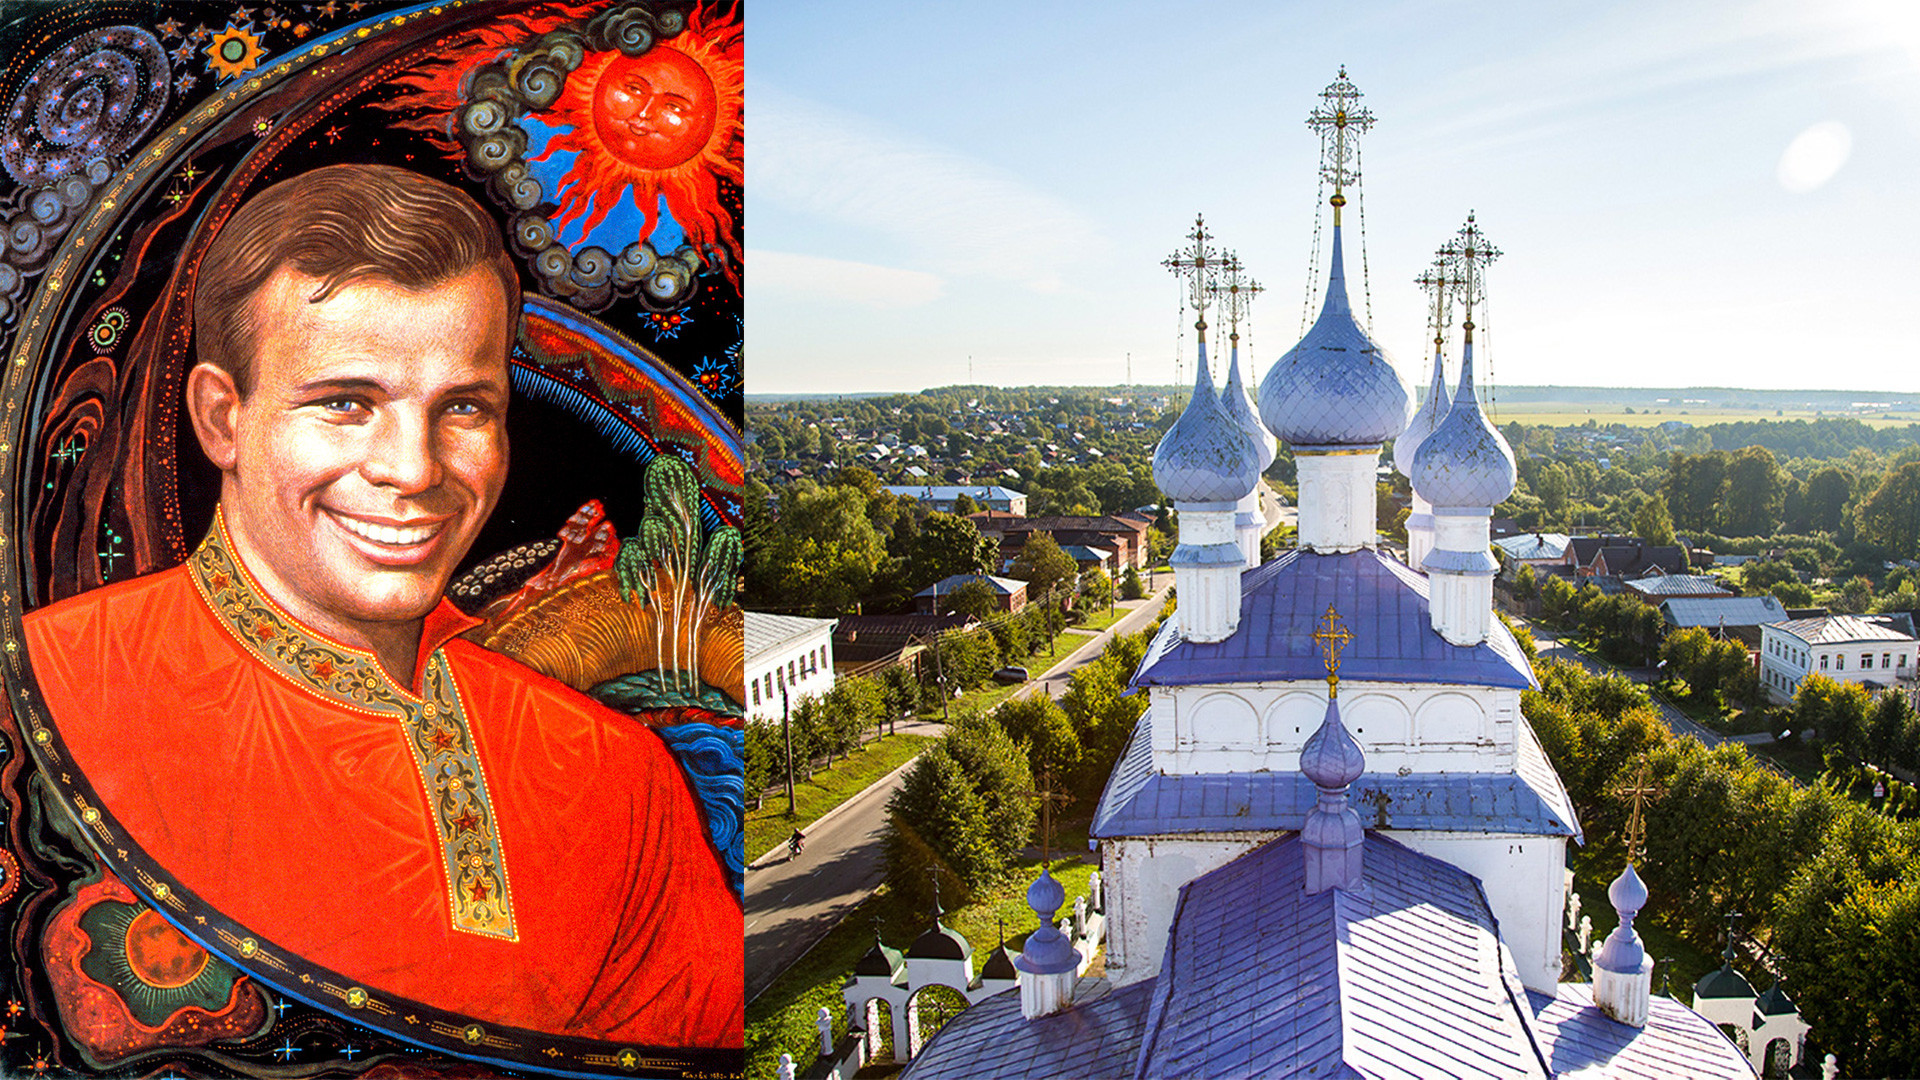 Yury Gagarin in the traditional Palekh style and the view of Palkeh's main church with violet domes.